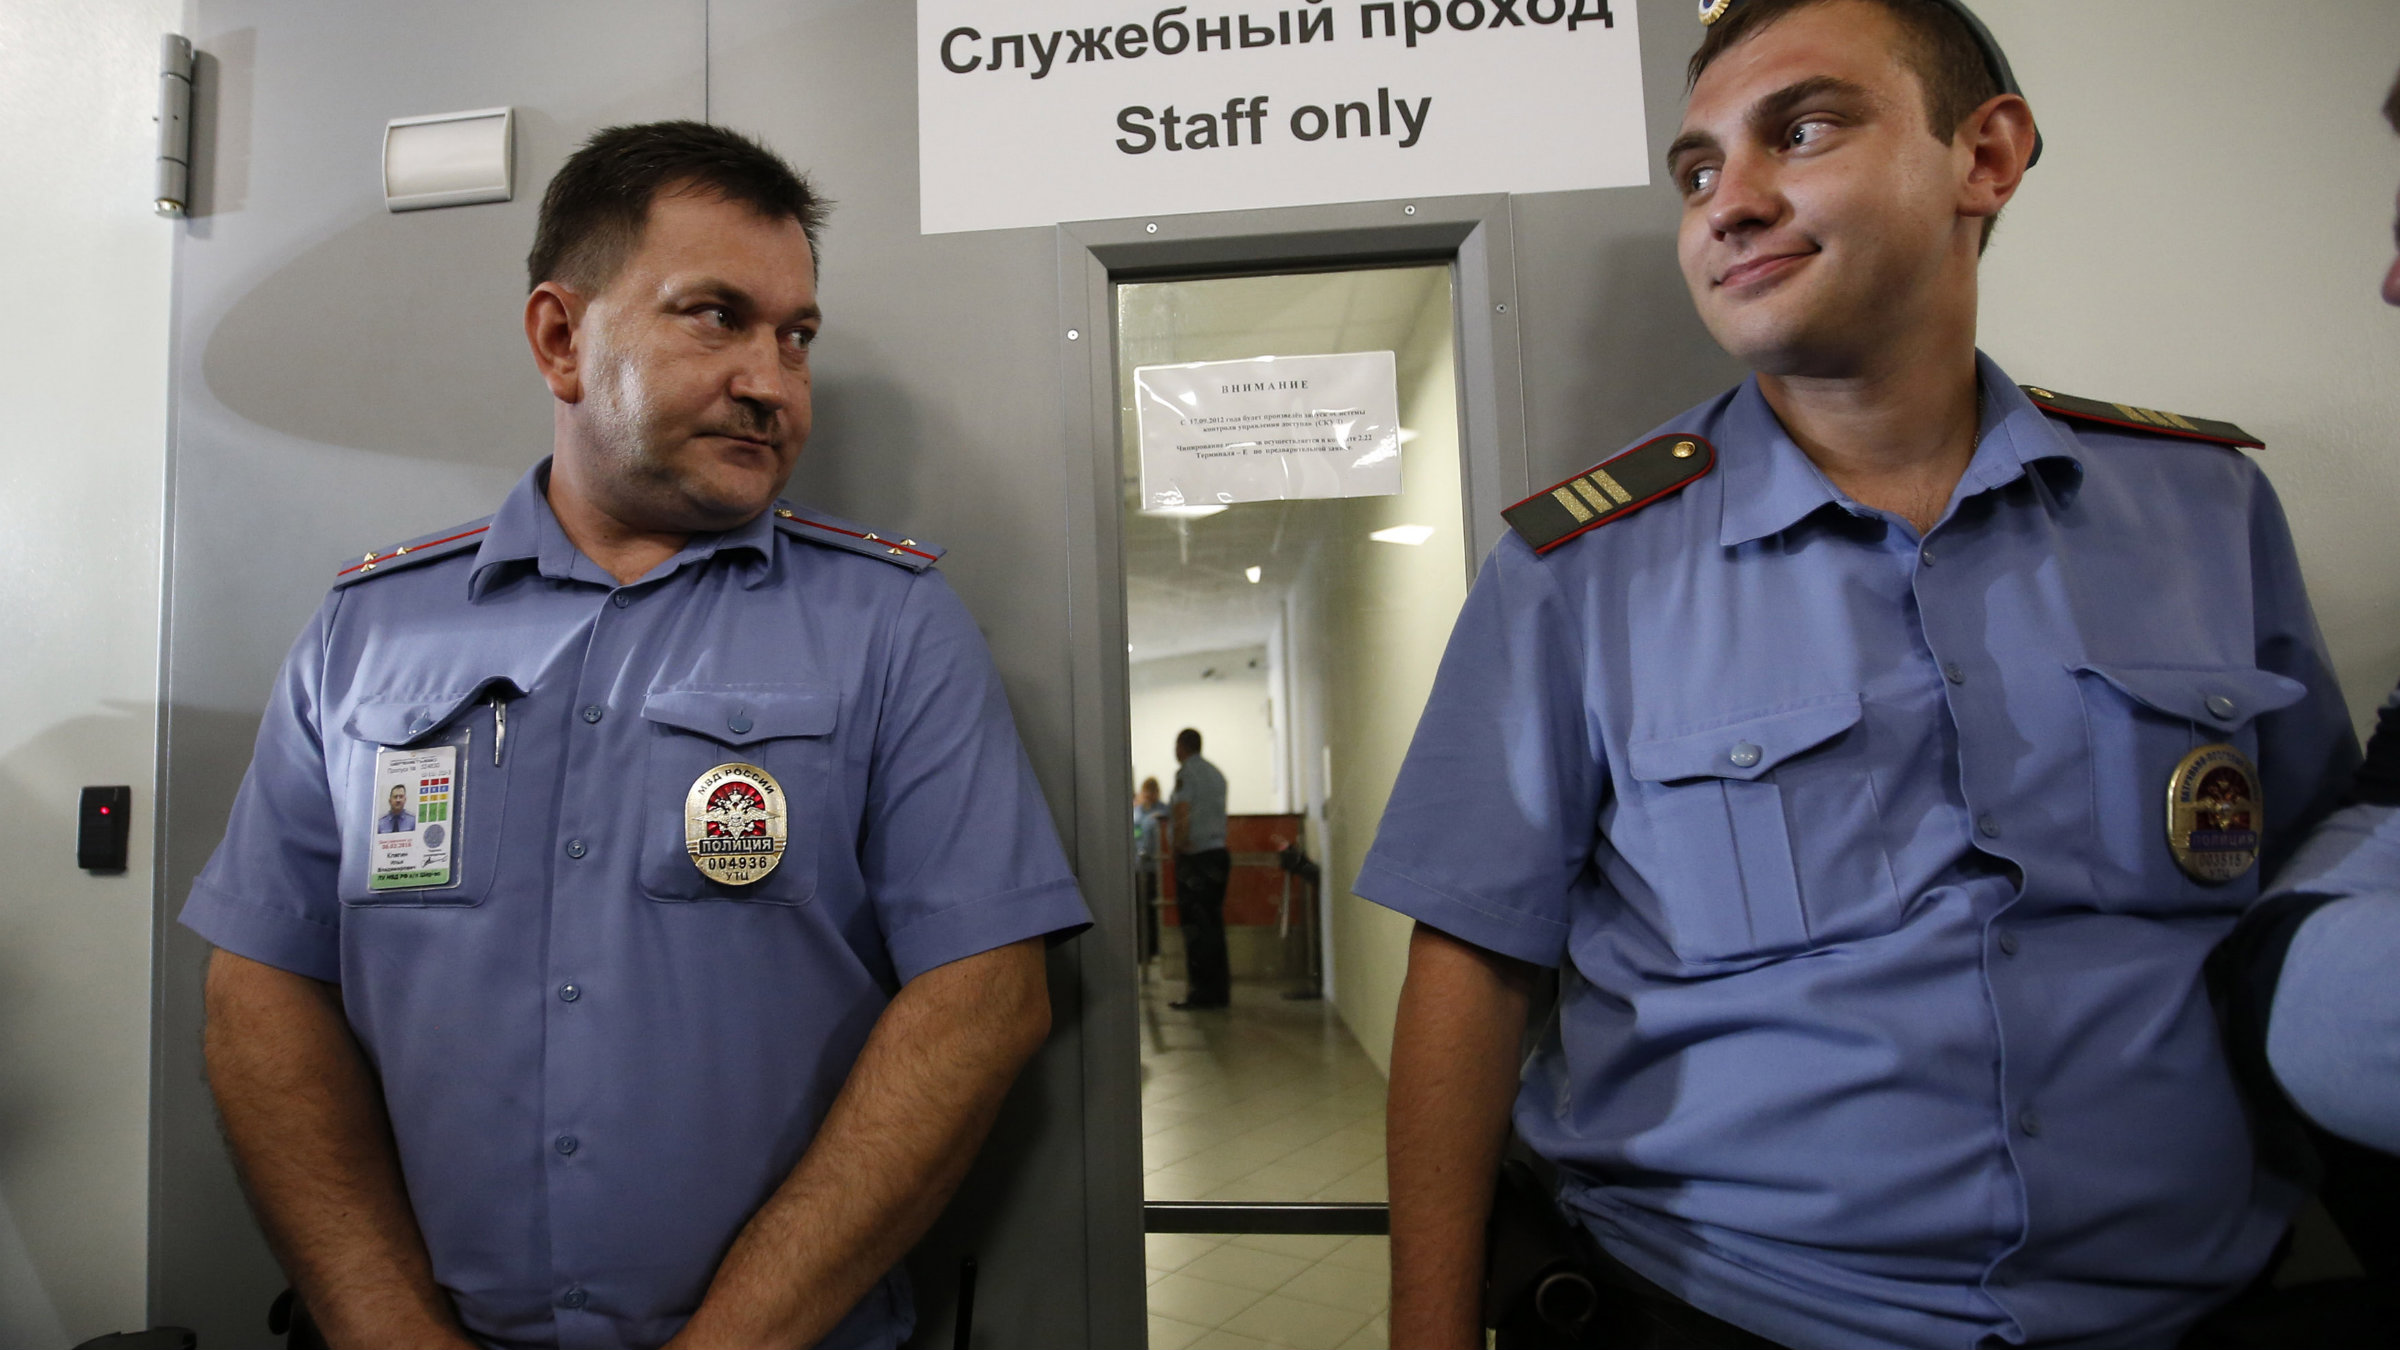 Russian police guarded Snowden's airport meeting.